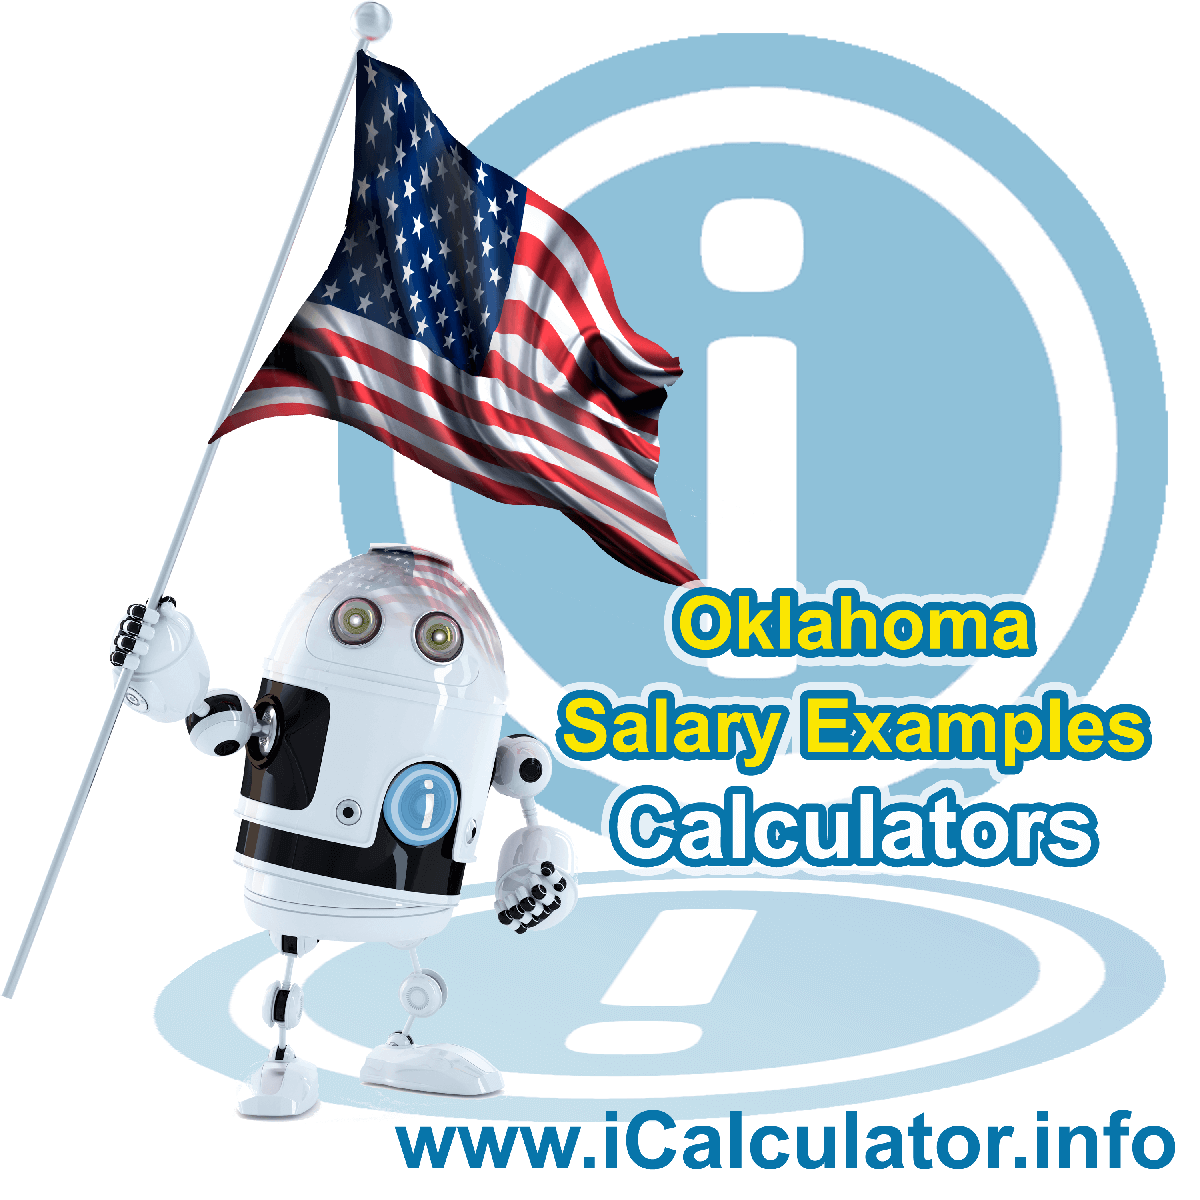 Oklahoma Salary Example for $250.00 in 2020 | iCalculator | $250.00 salary example for employee and employer paying Oklahoma State tincome taxes. Detailed salary after tax calculation including Oklahoma State Tax, Federal State Tax, Medicare Deductions, Social Security, Capital Gains and other income tax and salary deductions complete with supporting Oklahoma state tax tables